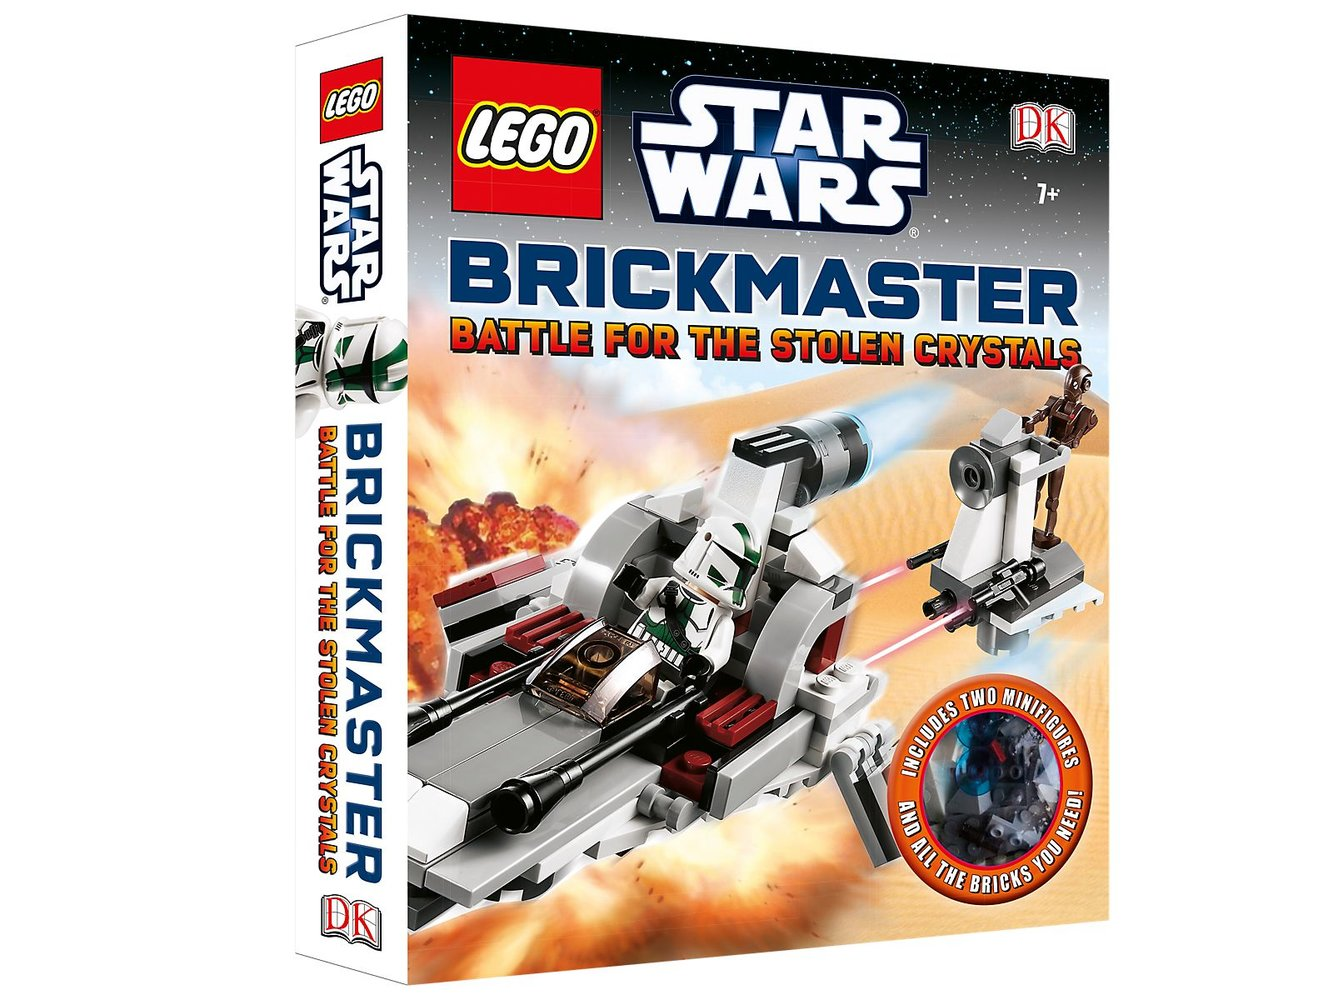 Star Wars: Brickmaster: Battle for the Stolen Crystals